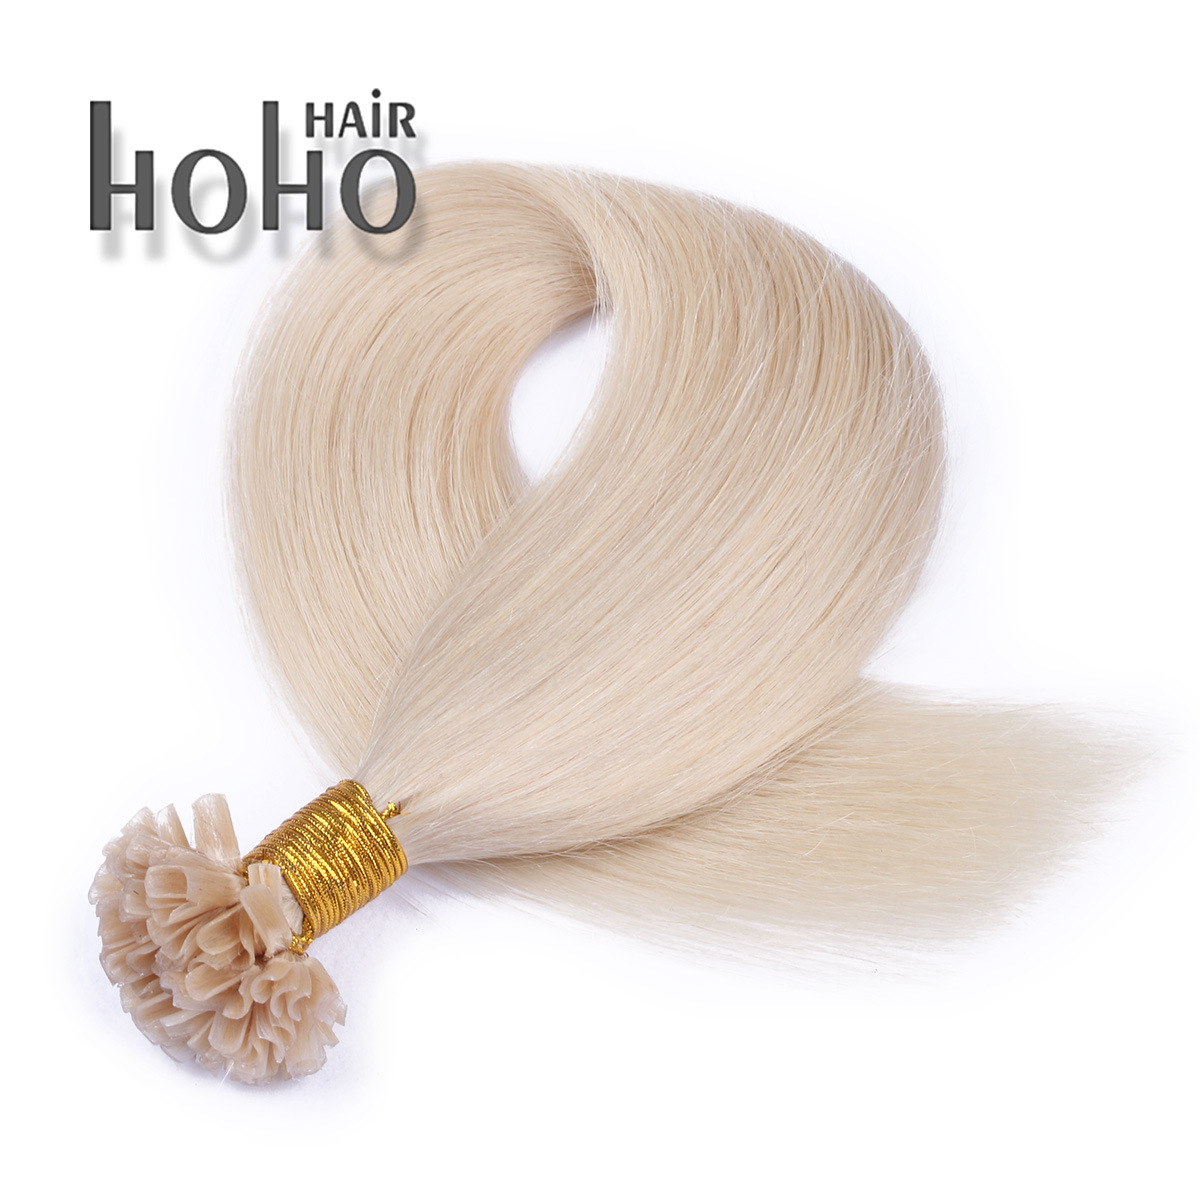 China Wholesale Remy Human Hair Blond 22 Inch U Tip Hair Extensions